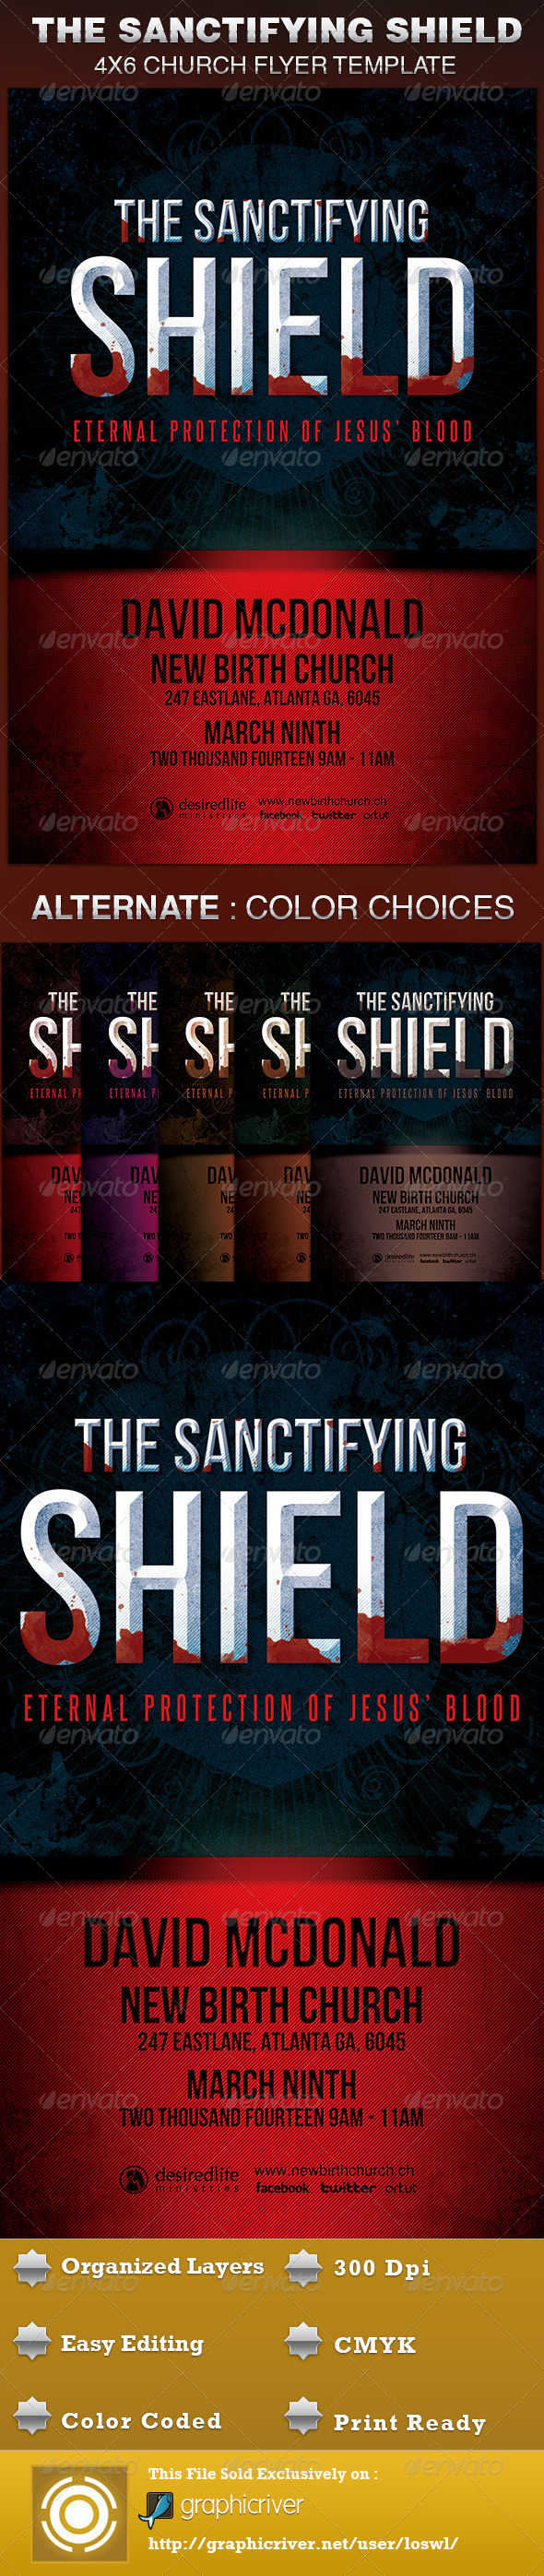 GraphicRiver The Sanctifying Shield Church Flyer Template 5656744